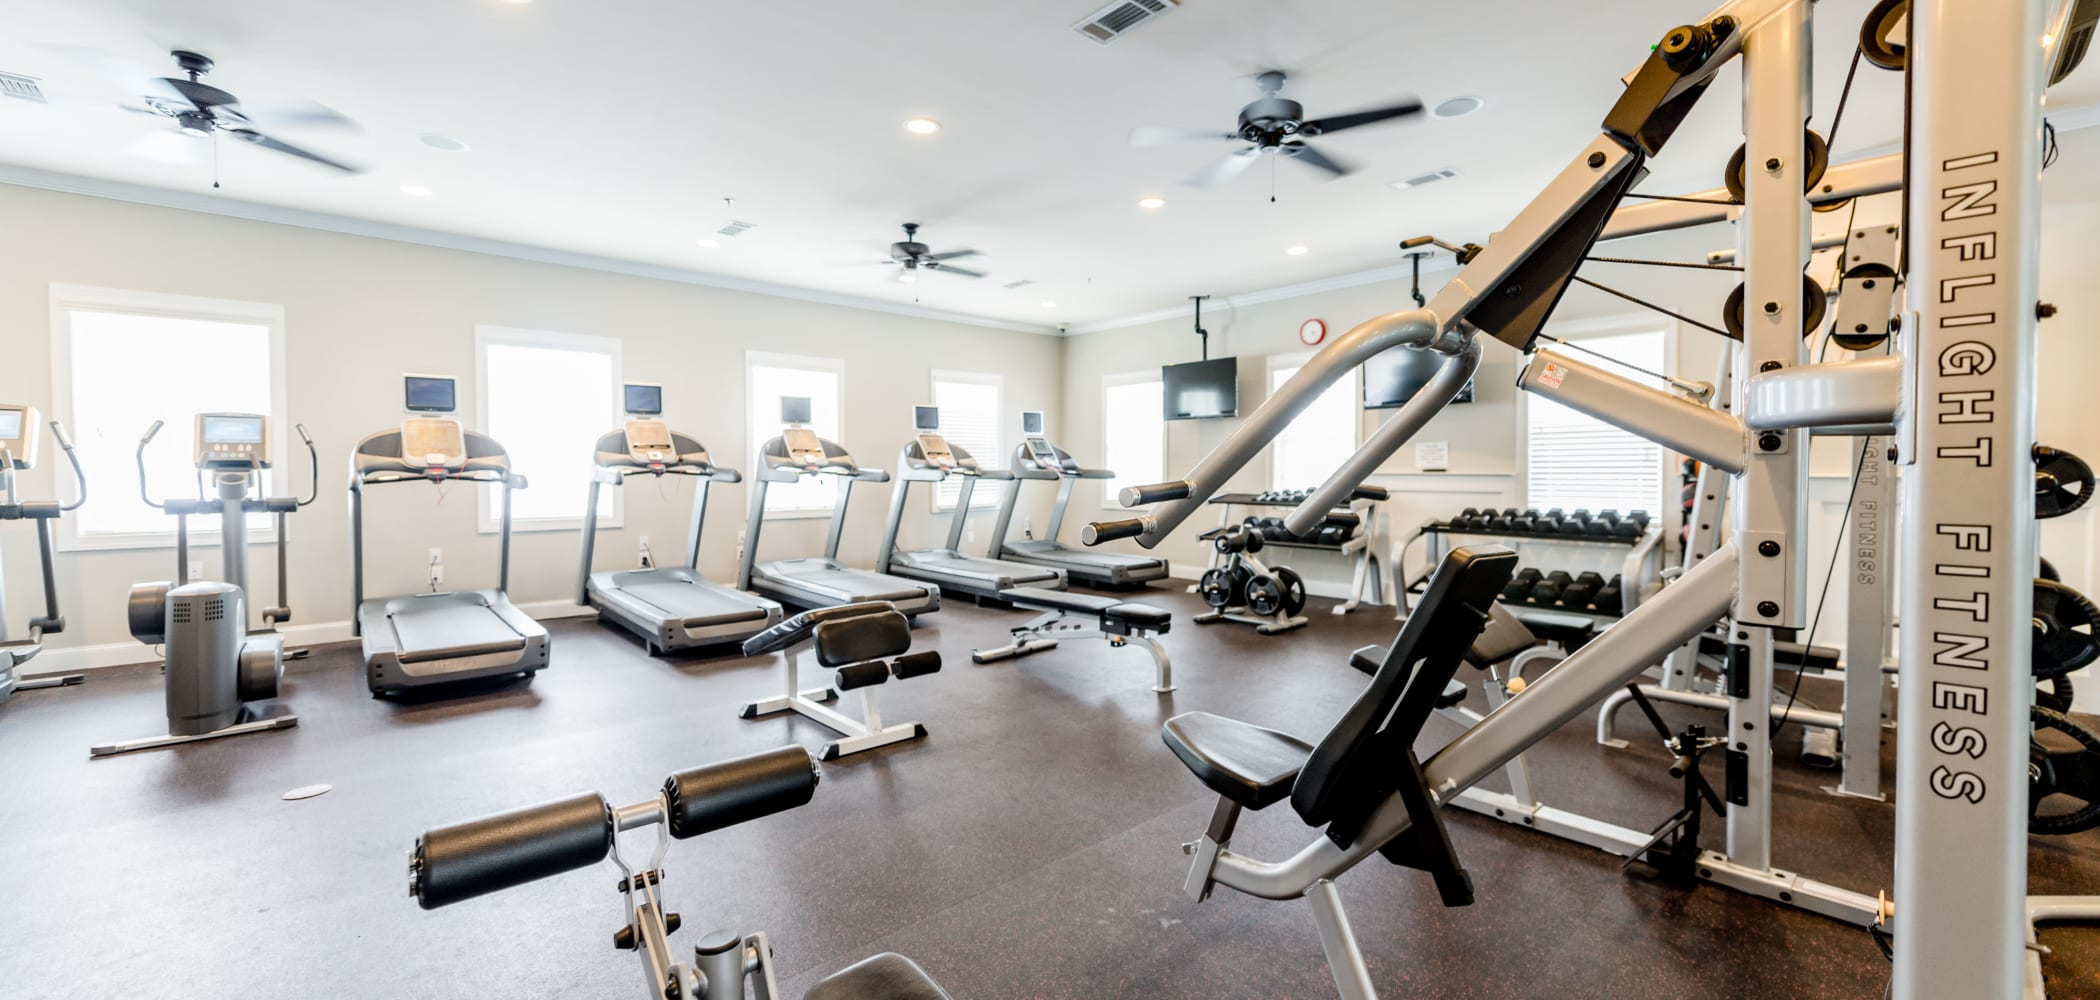 Full gym with tons of equipment to use at Ikon Athens in Athens, Georgia